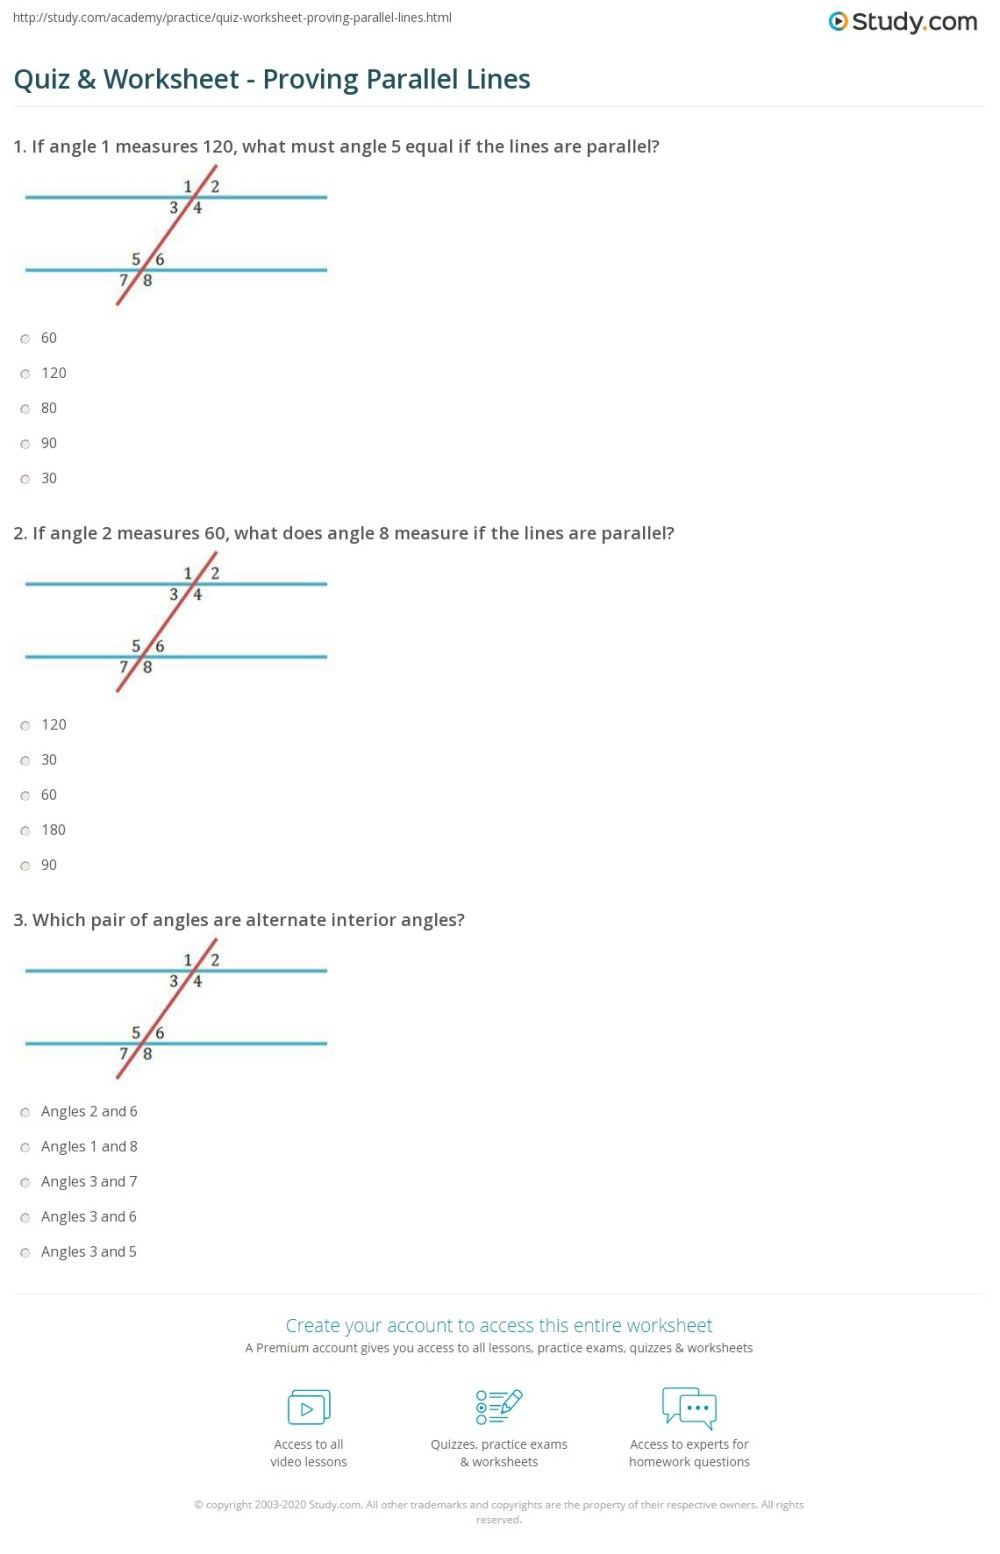 medium resolution of Angles And Parallel Lines Worksheet Answers - Promotiontablecovers